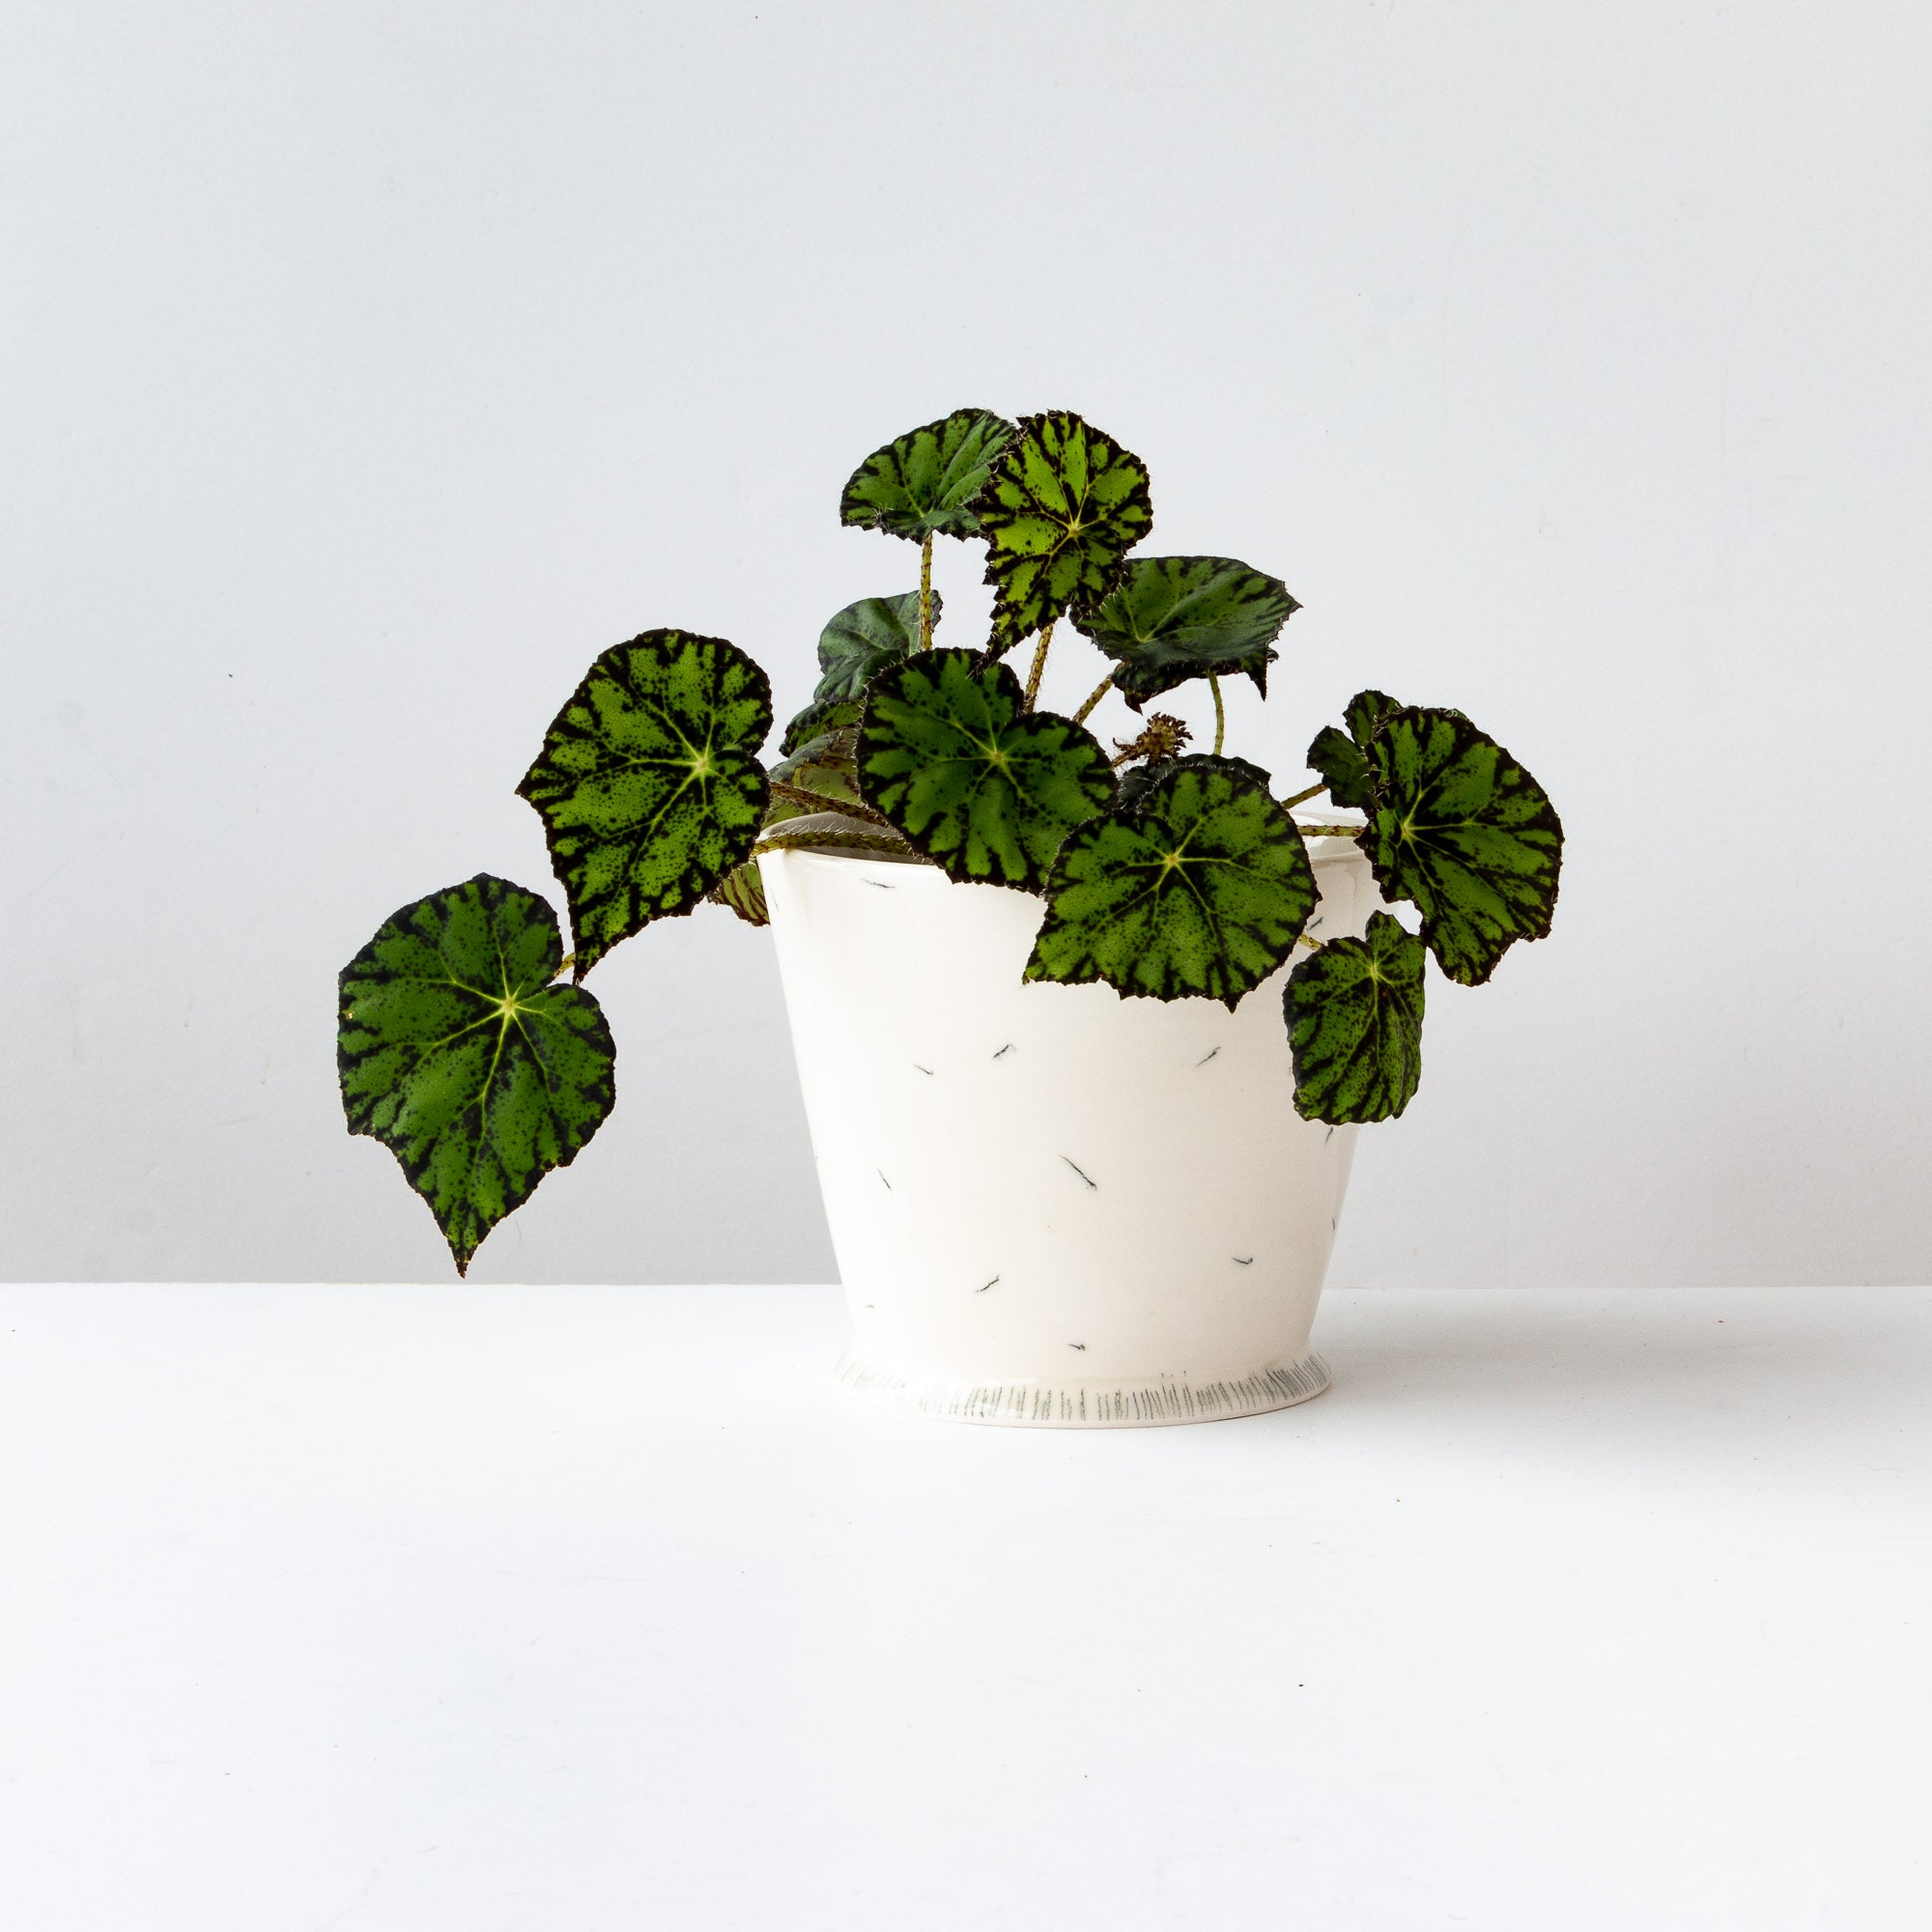 White Handmade Porcelain Planter Pot With a Plant - Sold by Chic & Basta